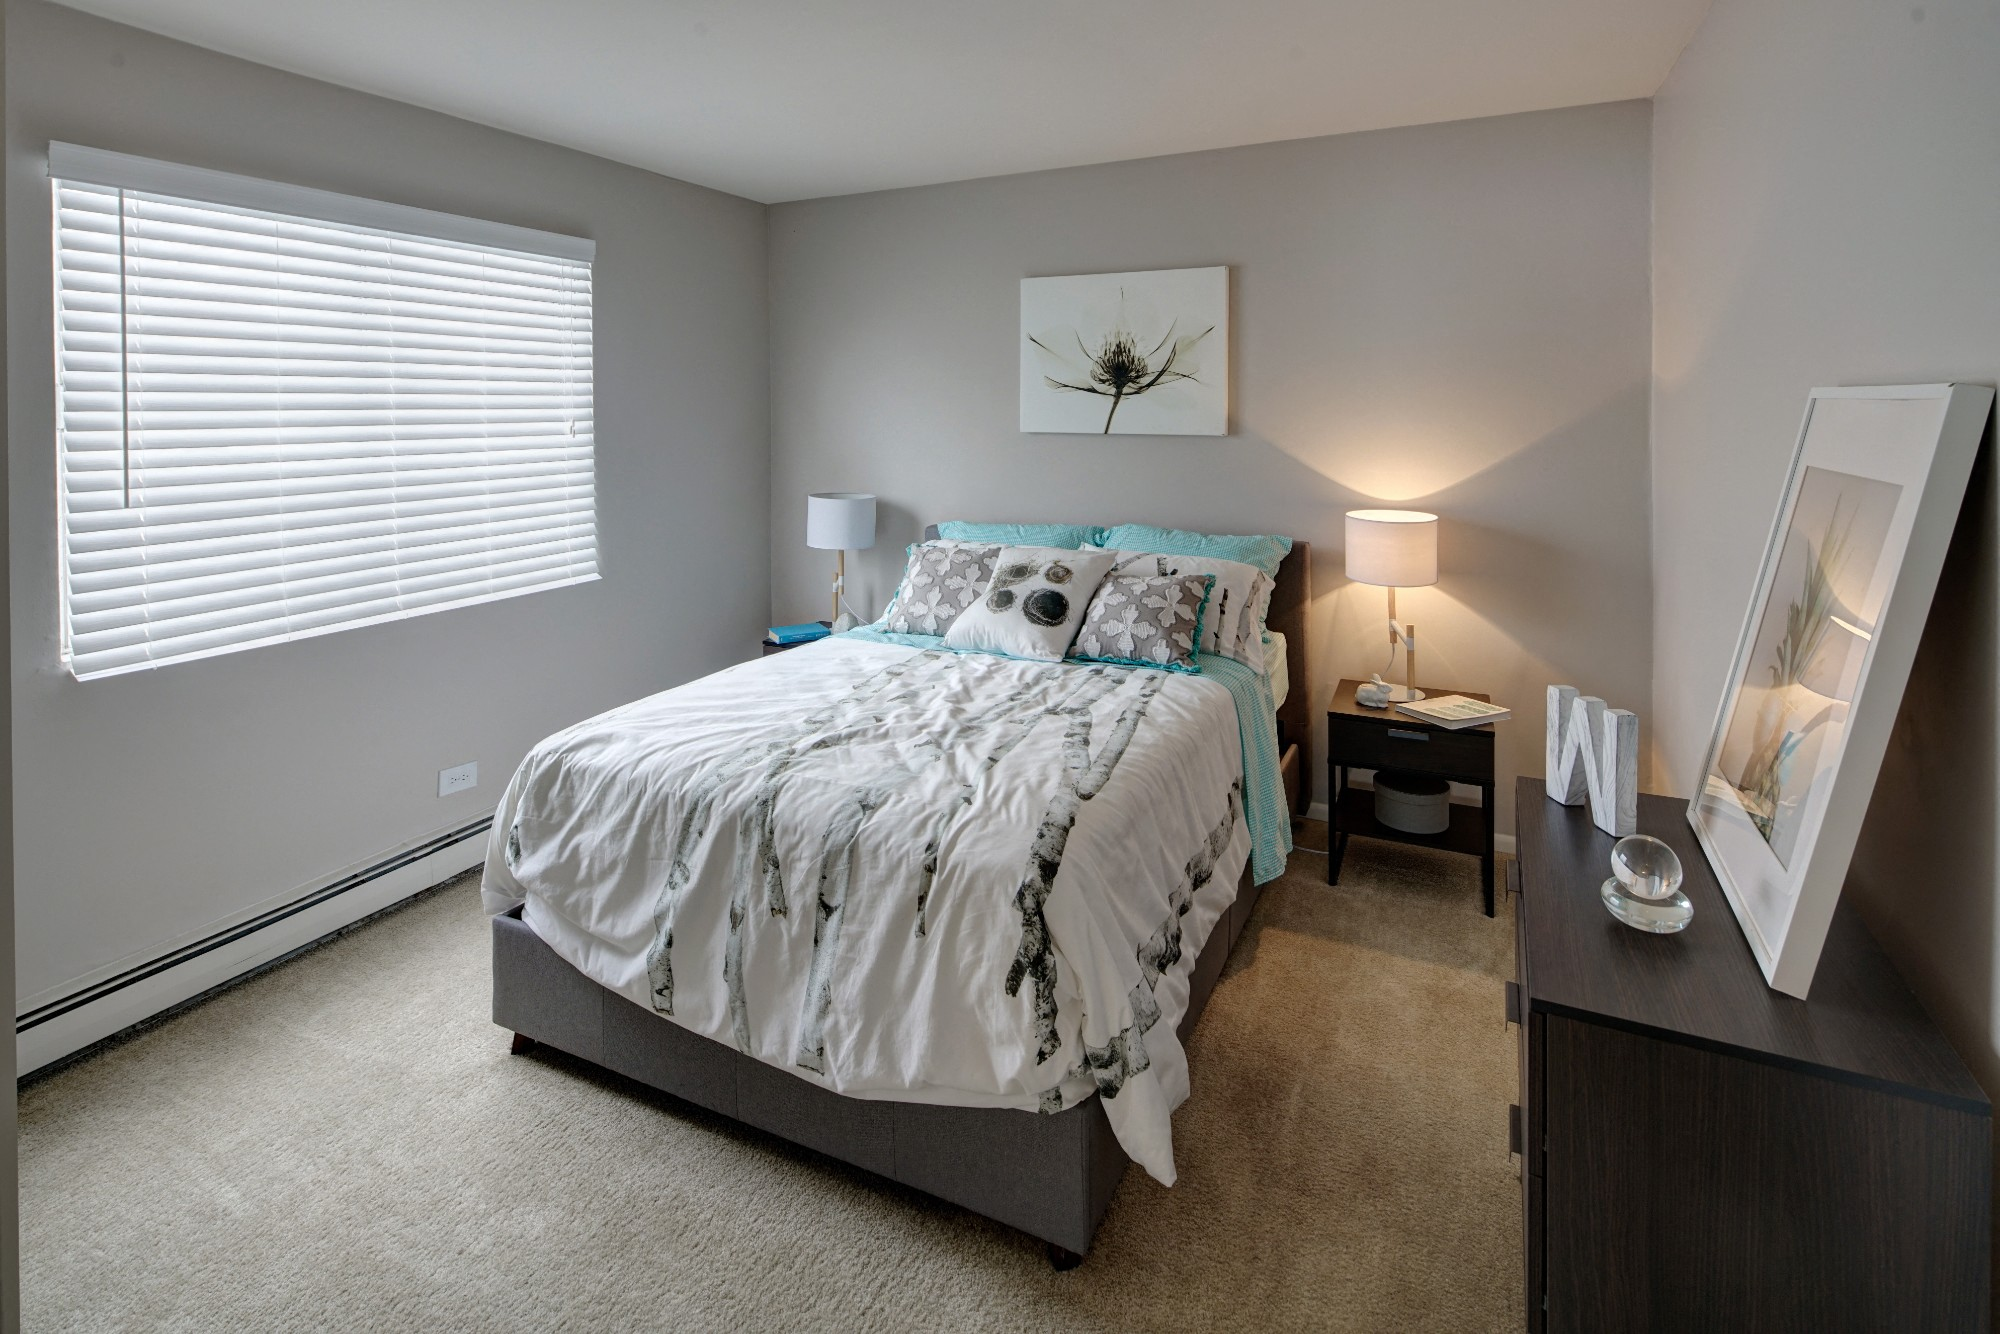 Spacious Bedroom With Comfortable Bed at Westmont Village, Illinois, 60559